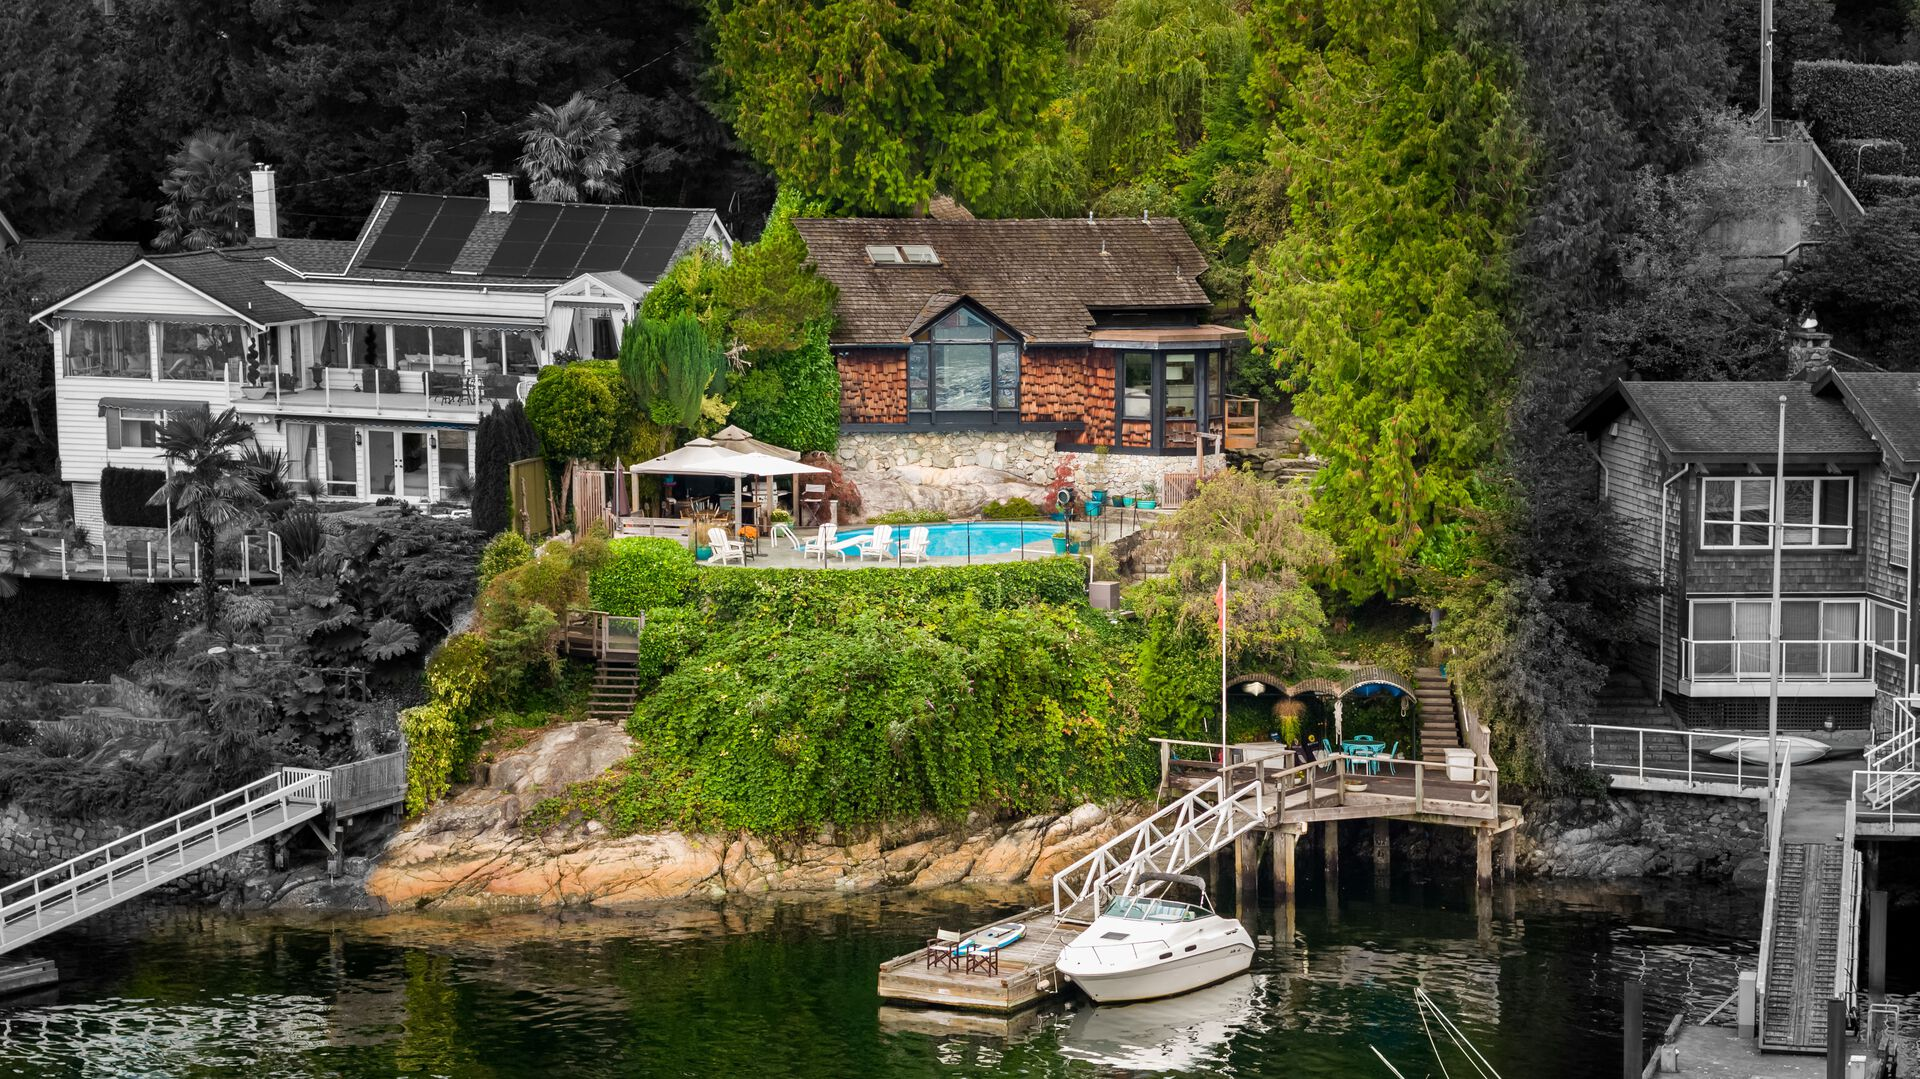 deepcove at 4541 Stonehaven Avenue, Deep Cove, North Vancouver